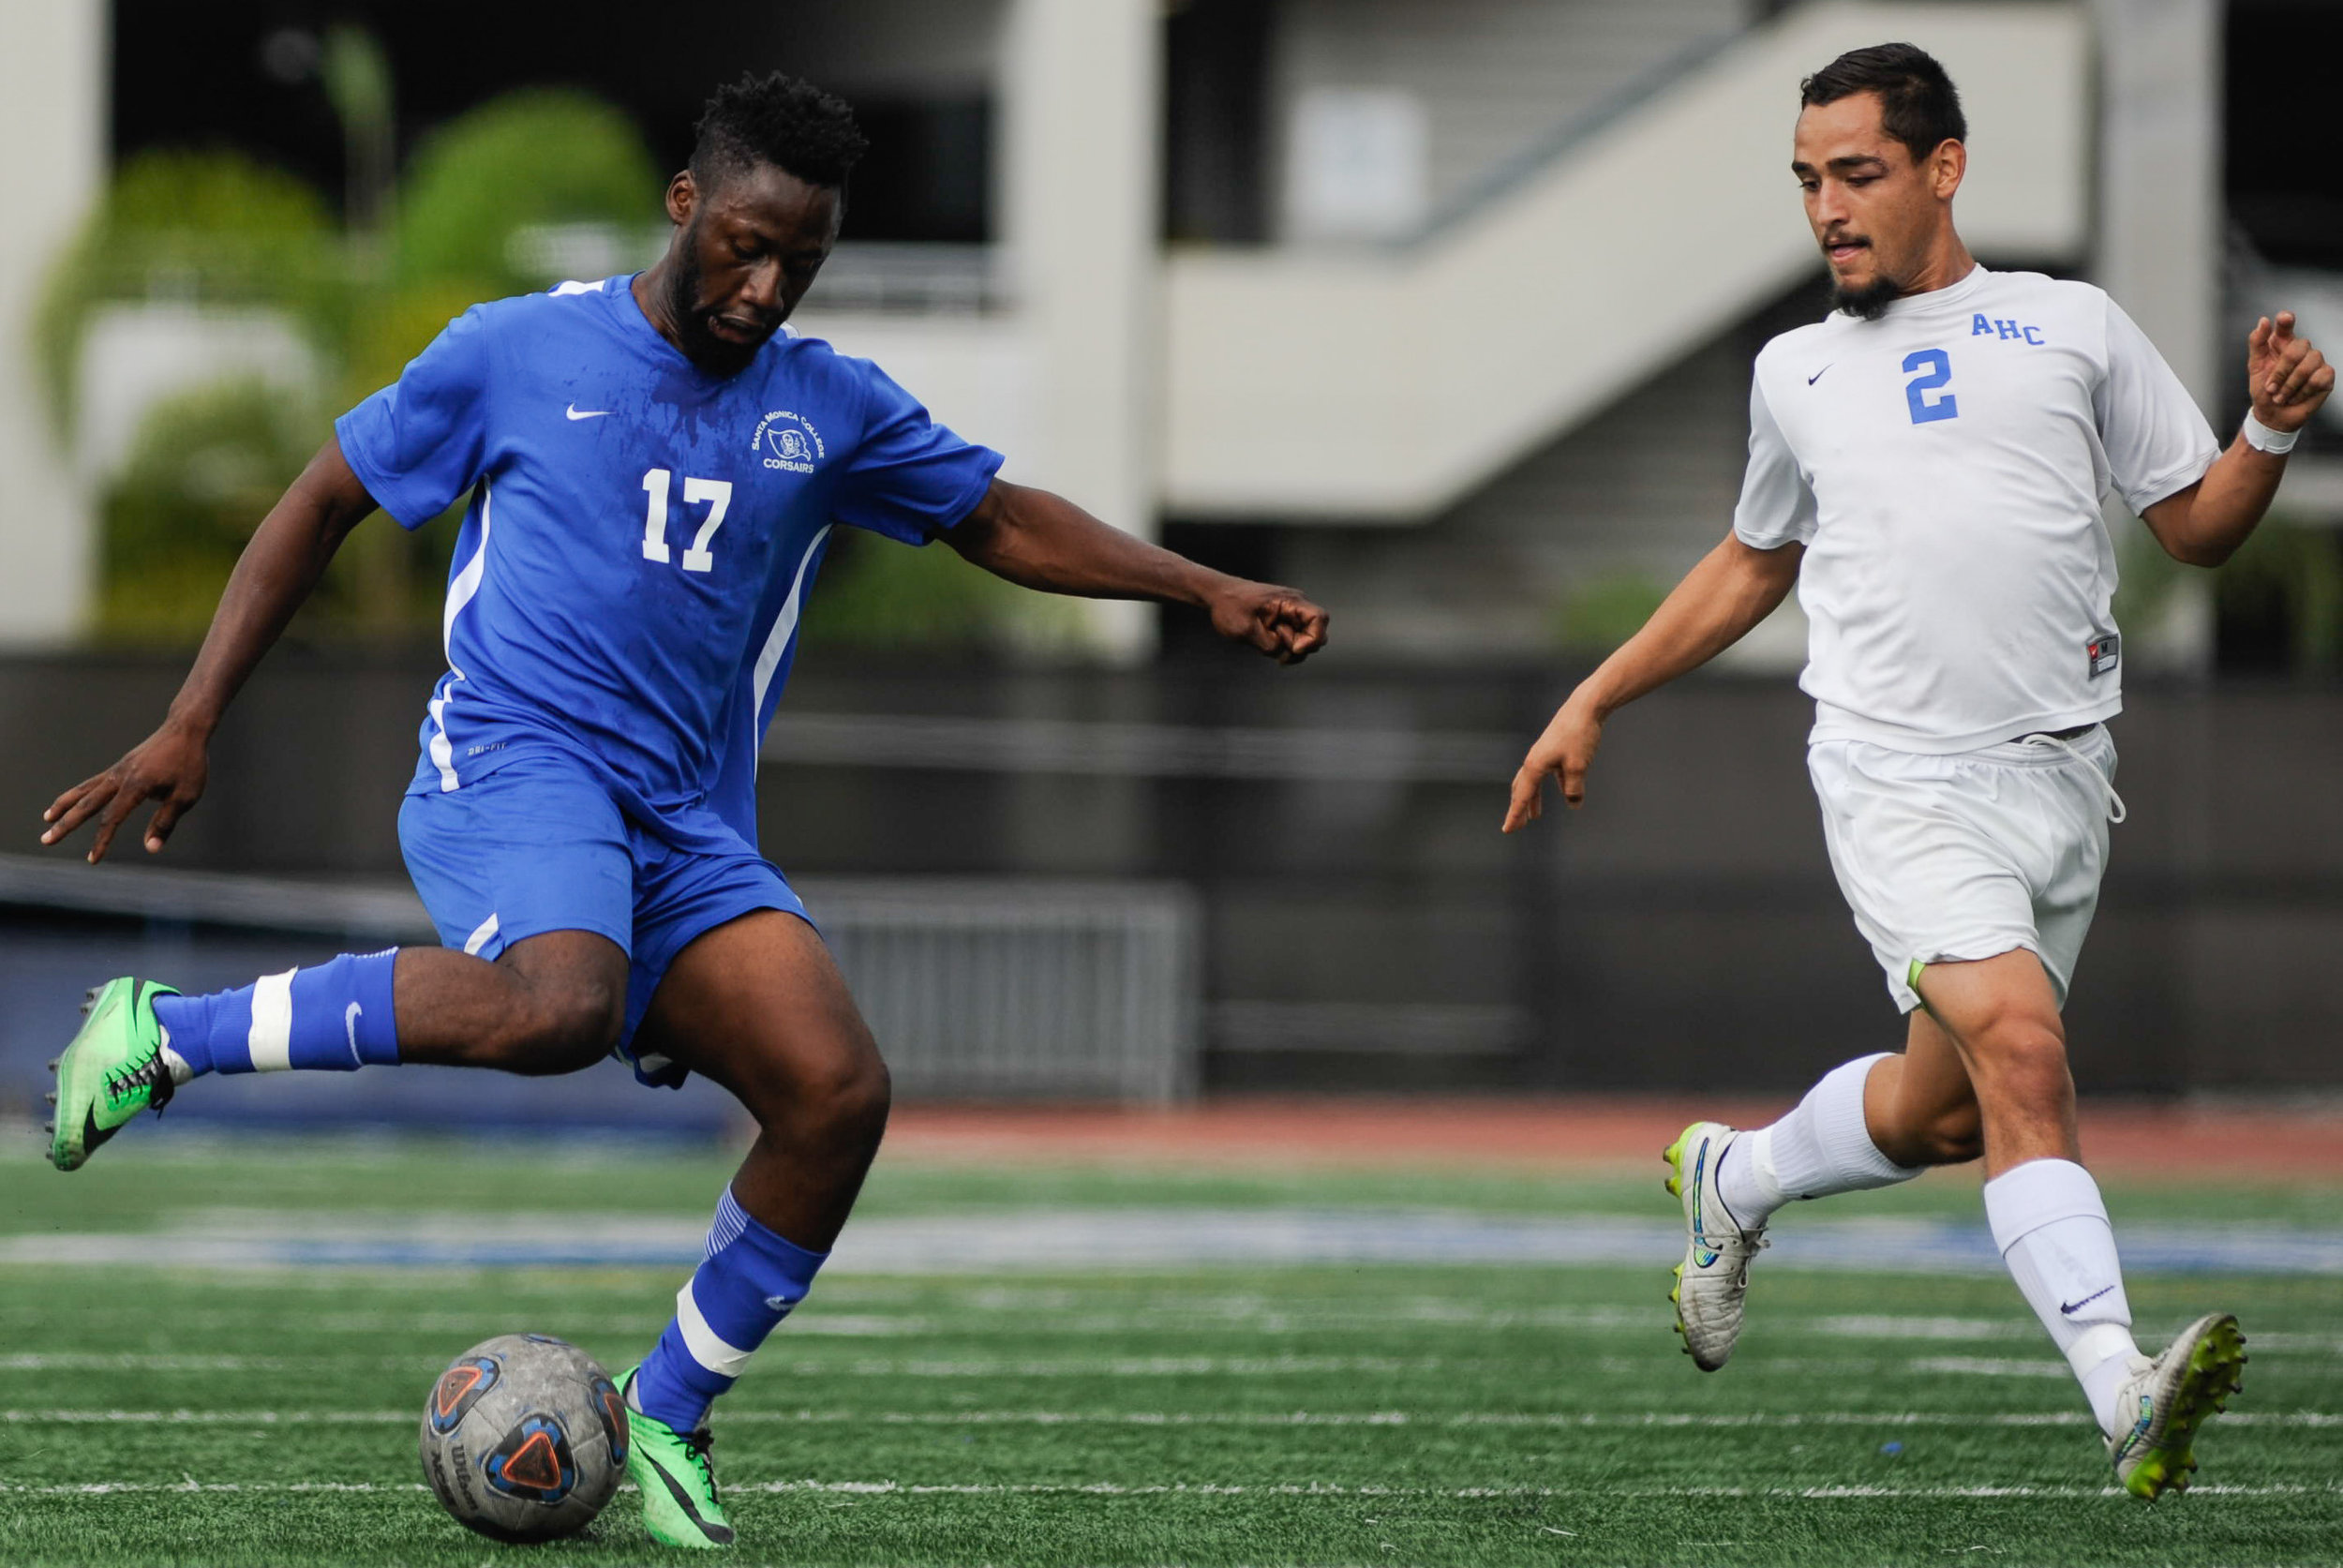 Midfielder Cyrille Njomo (17) of Santa Monica College fakes a pass while being guarded by defender Mario Delgado (2) of Allan Hancock College. The Santa Monica College Corsairs end the game tied with the Allan Hancock College Bulldogs 1-1. The match was held at the Corsair Stadium at the Santa Monica College Main Campus in Santa Monica, Calif.. October 31, 2017. (Photo by: Justin Han/Corsair Staff)